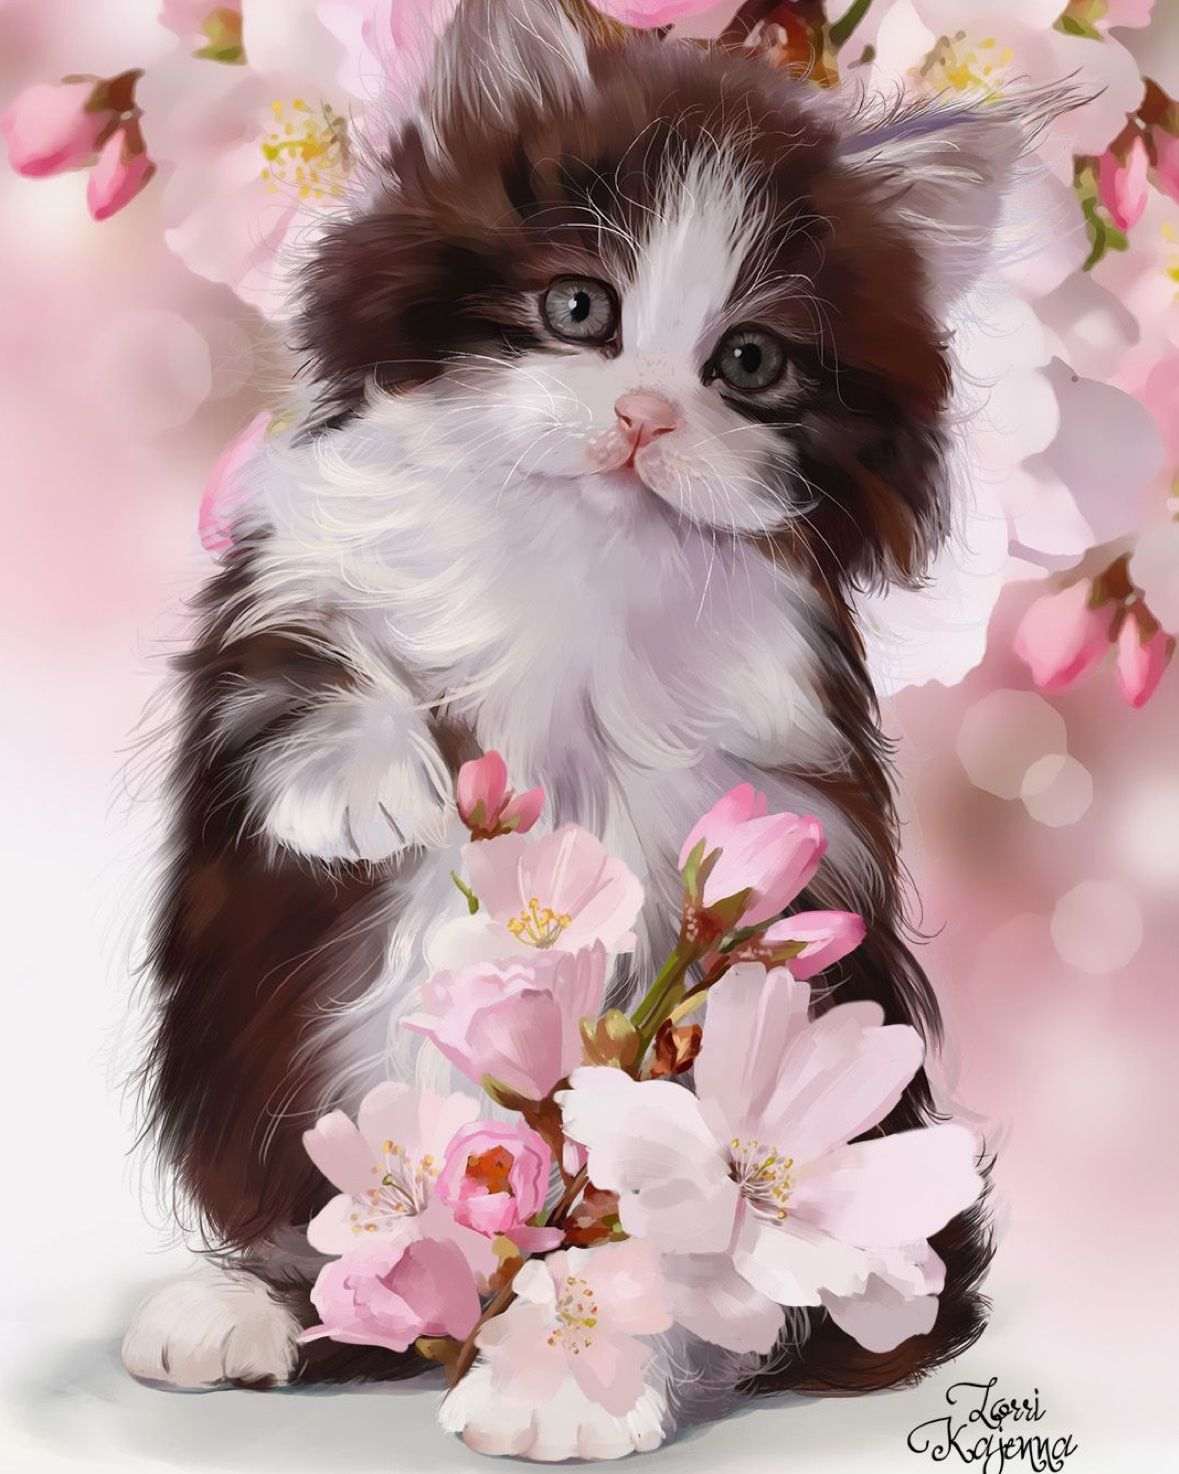 Jesus Is My Help That S All I Need Cute Cats And Kittens Cute Animals Animals